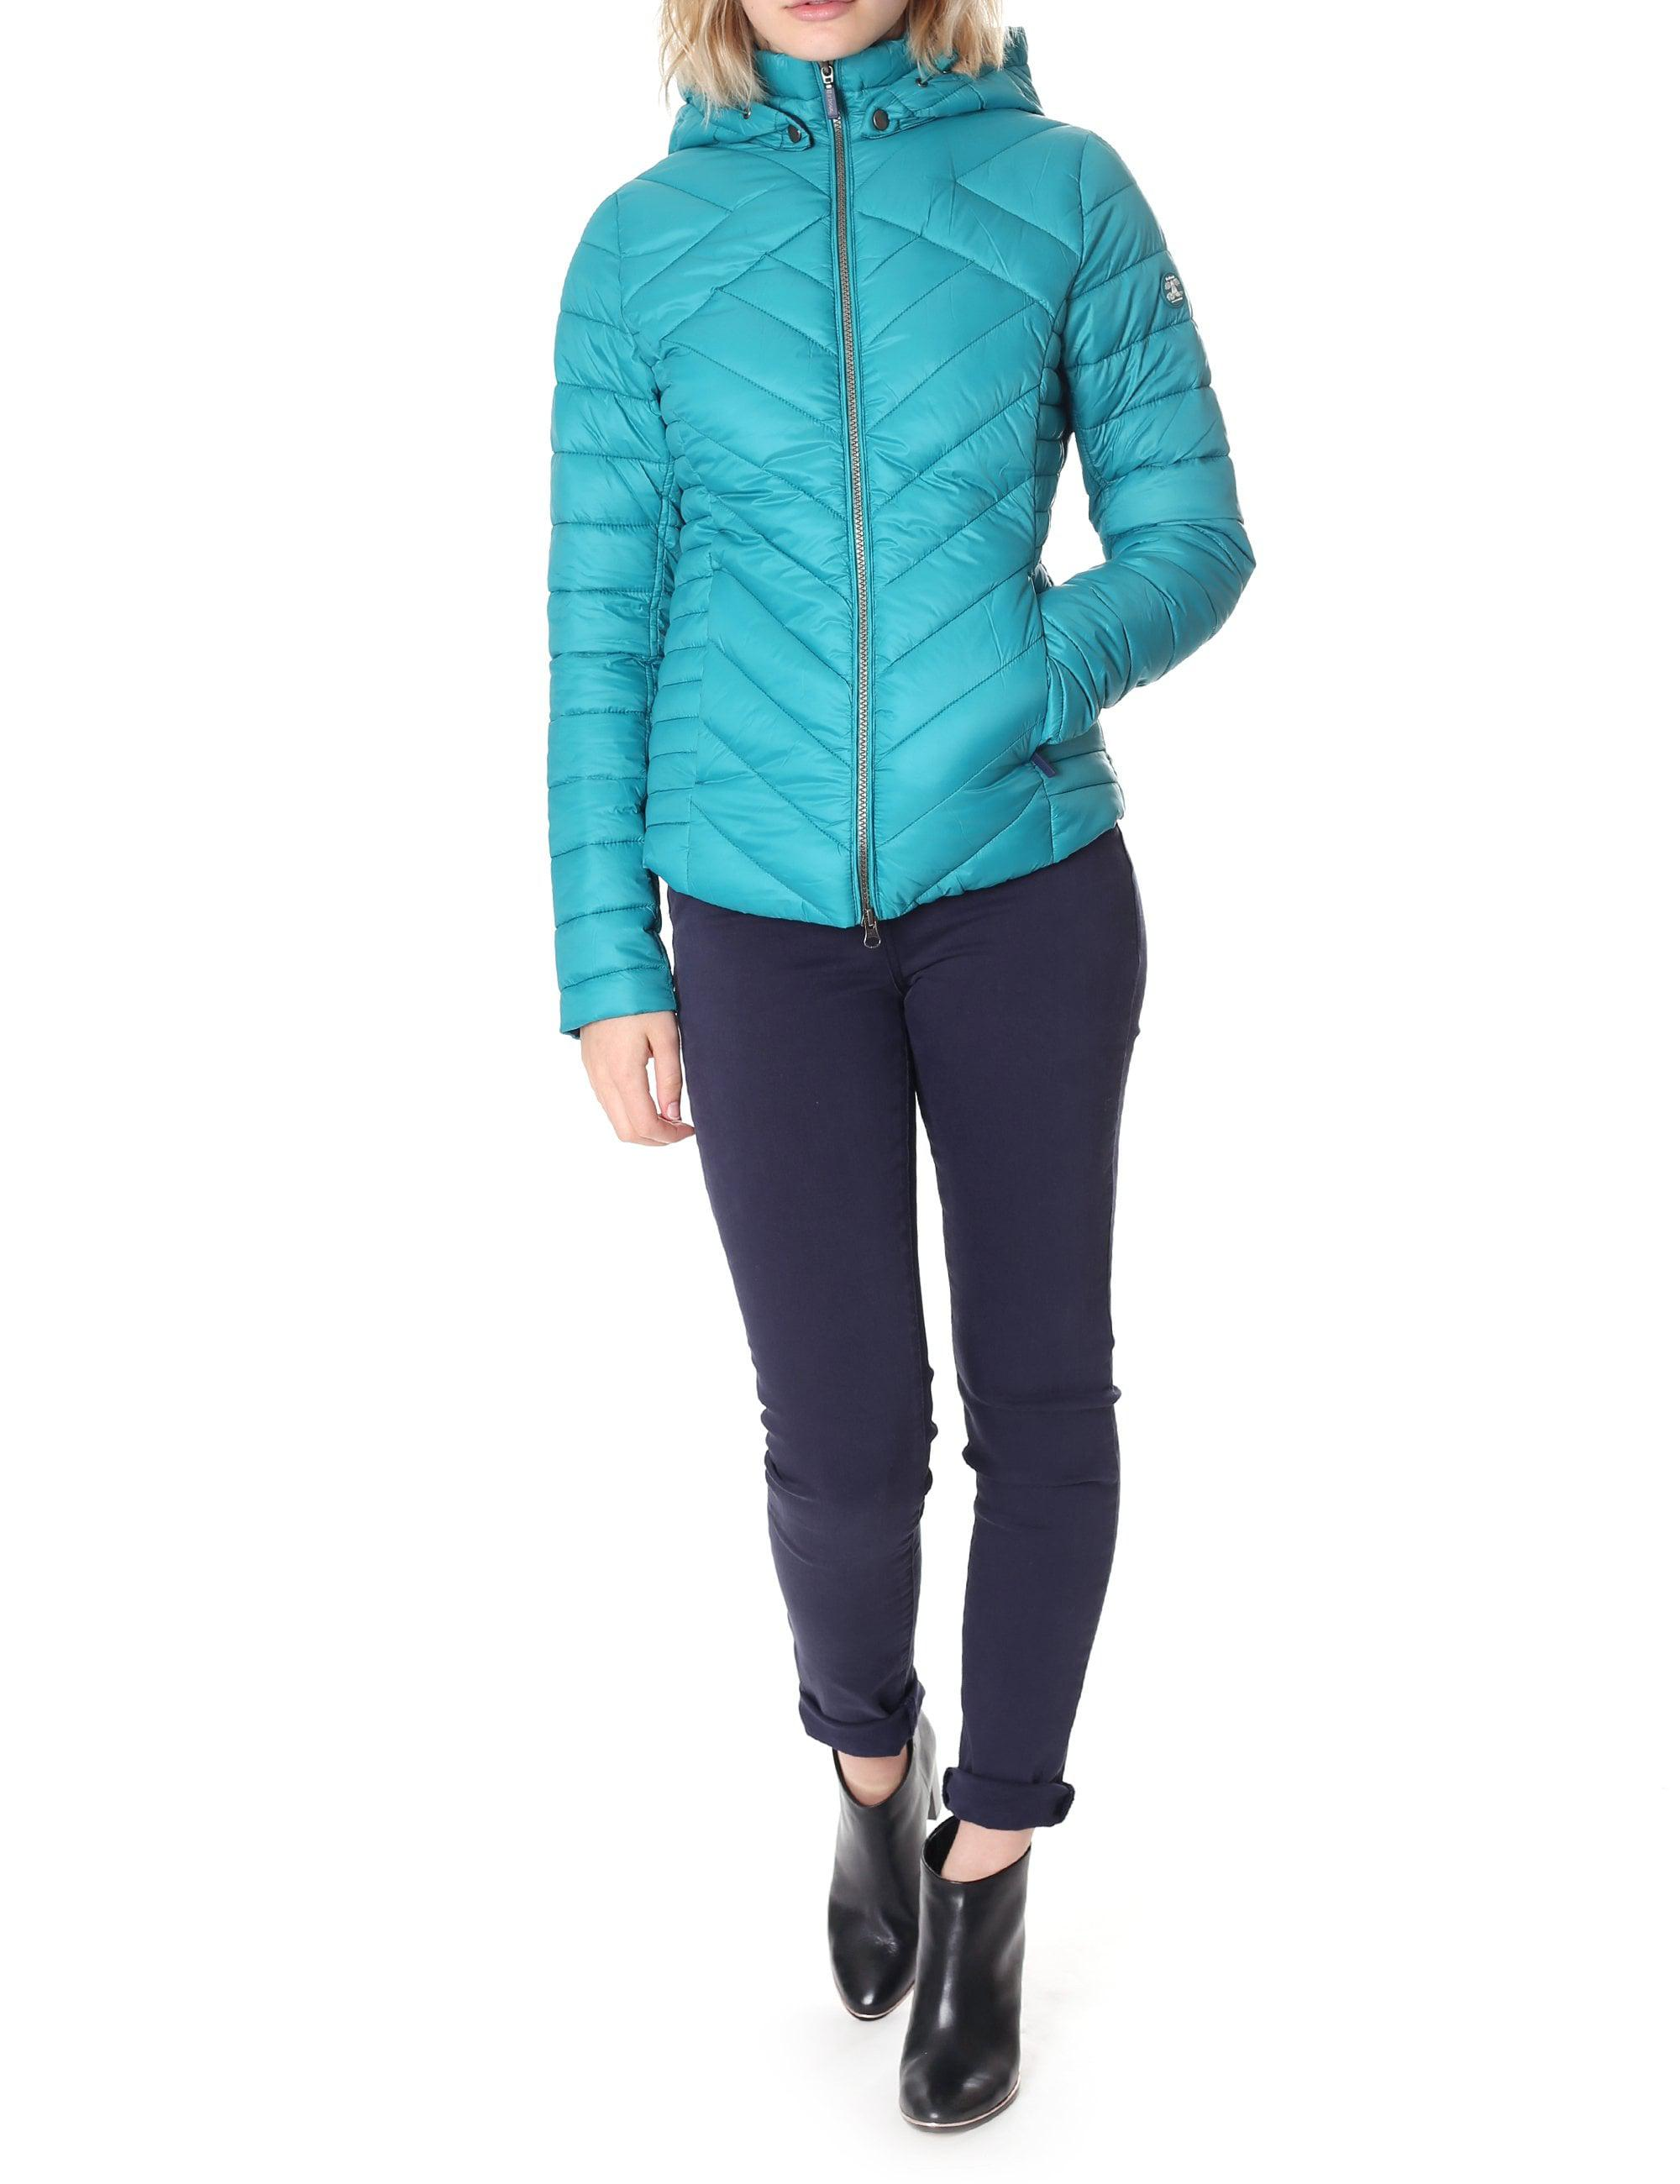 ecb2eb8ae909 Barbour Women s Pentle Quilt Jacket Seaglass in Blue - Lyst